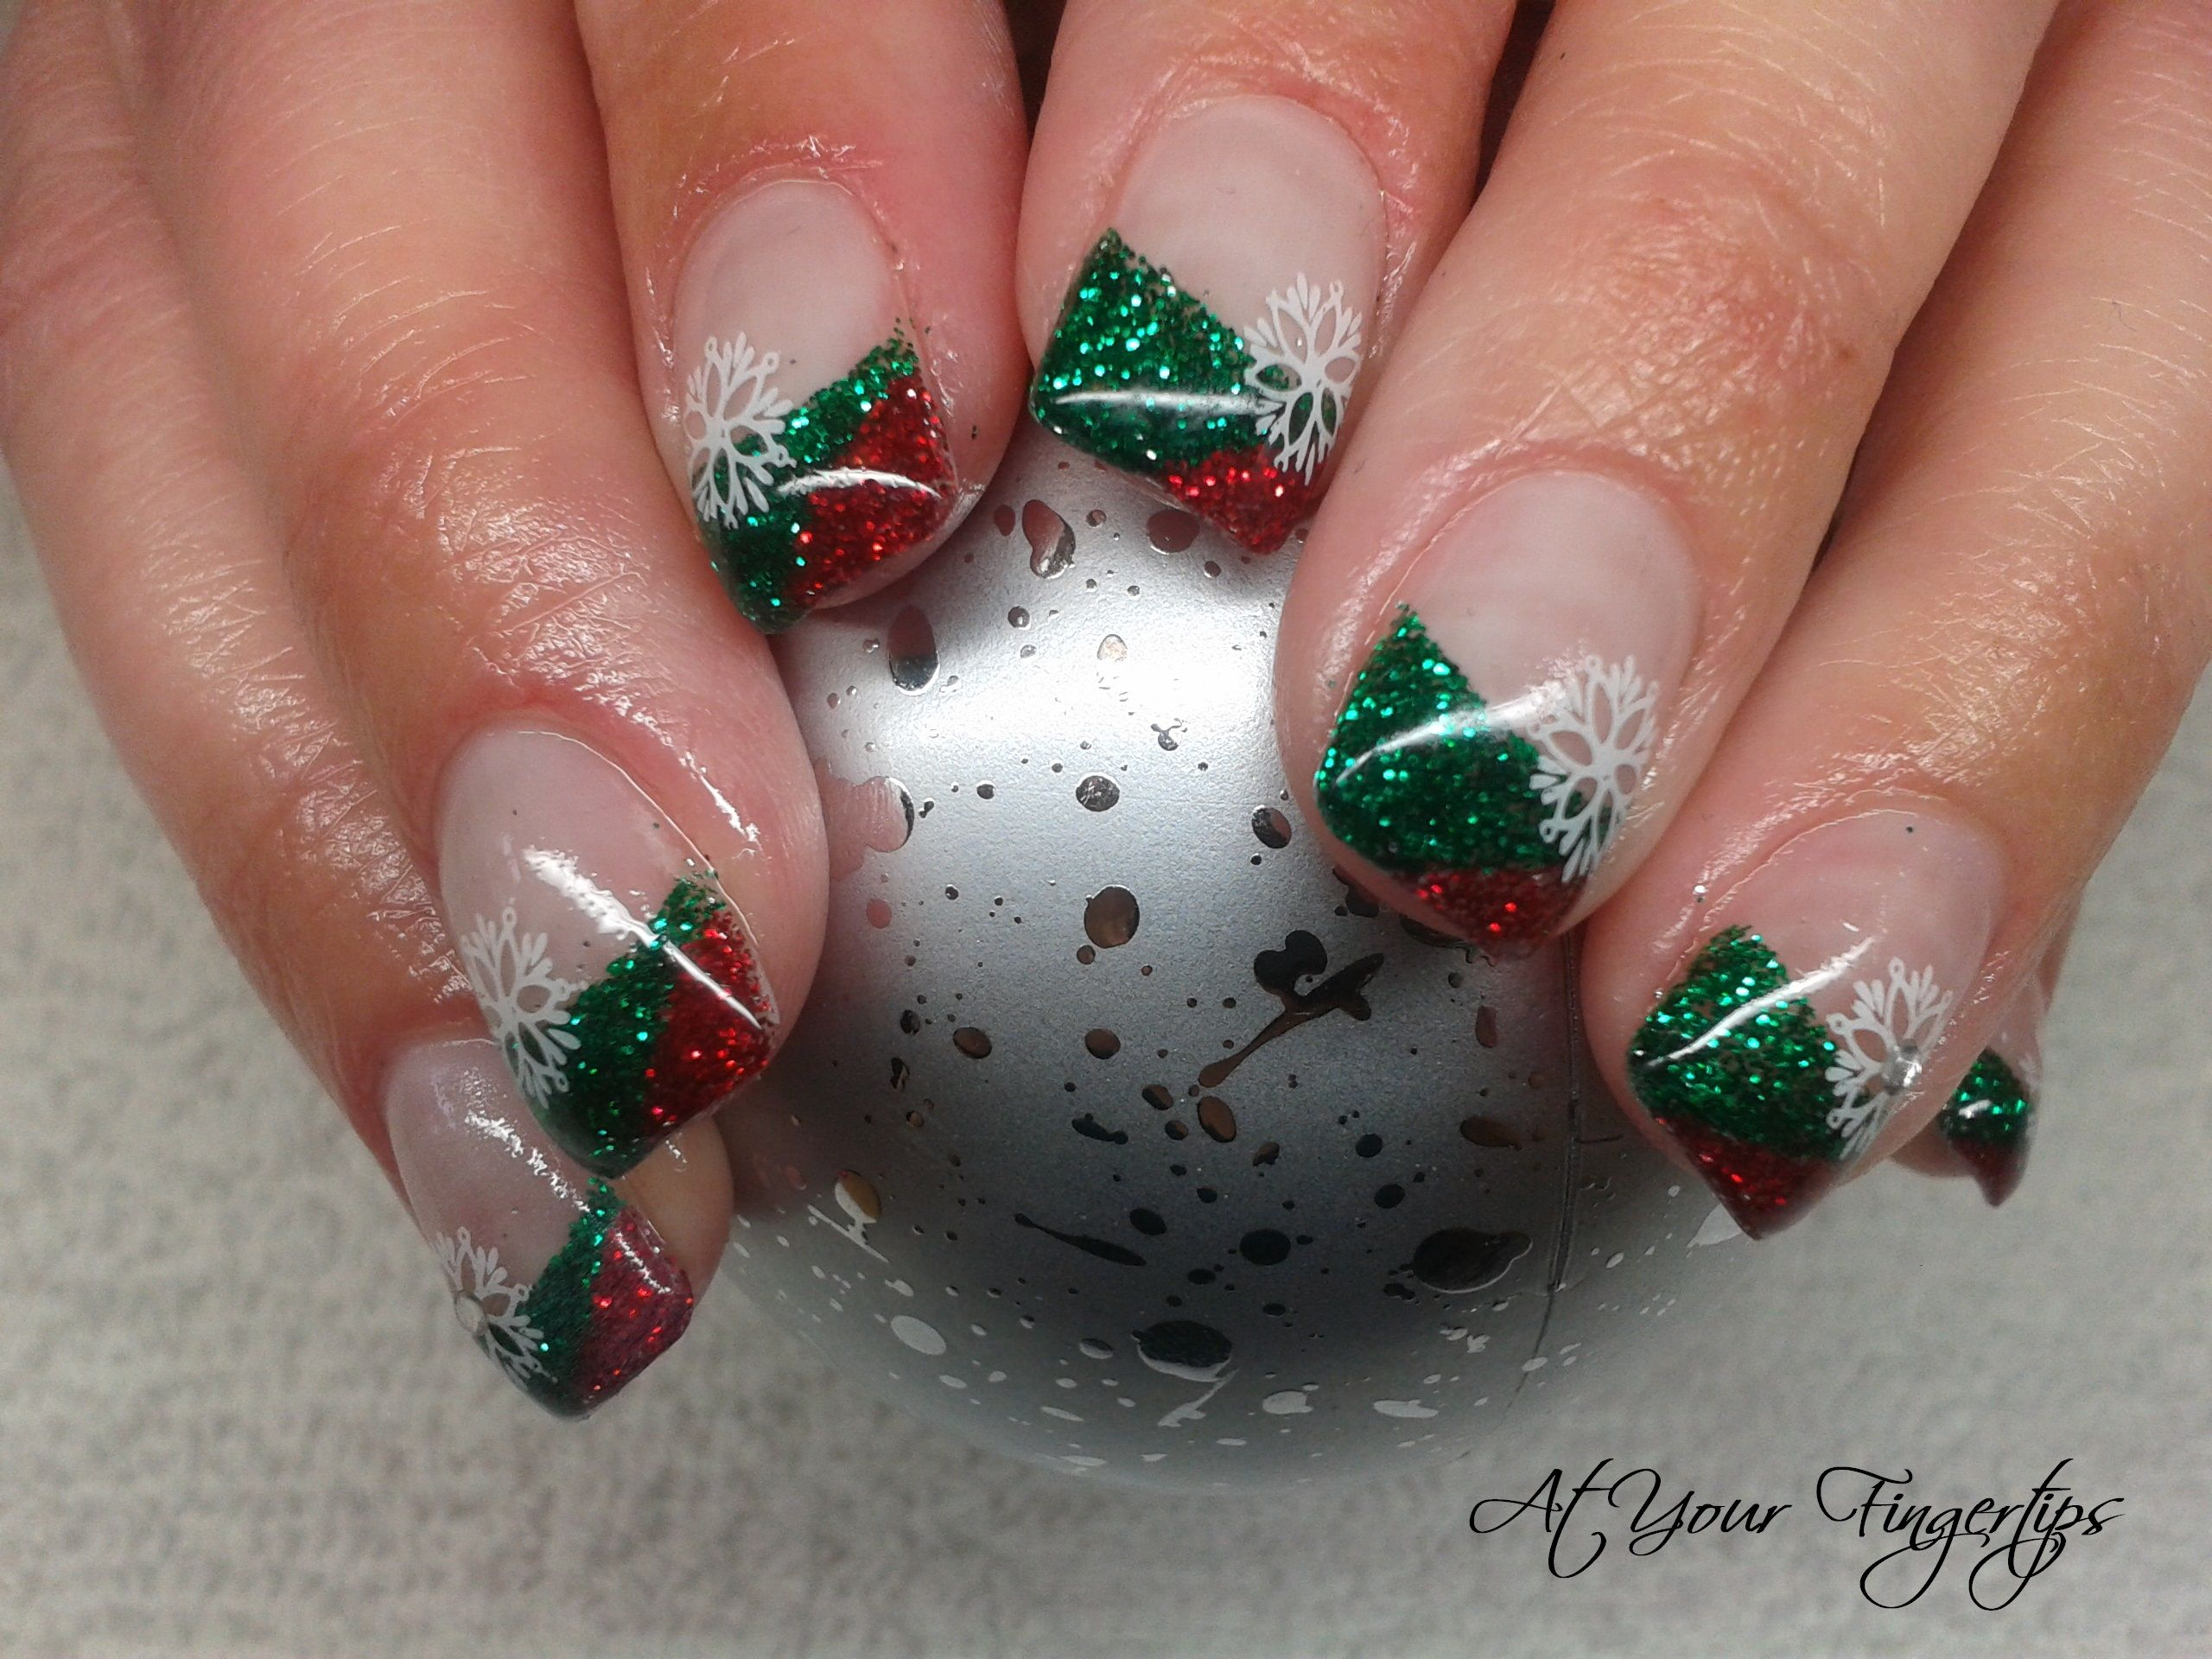 Christmas gel nails (With images) Christmas gel nails